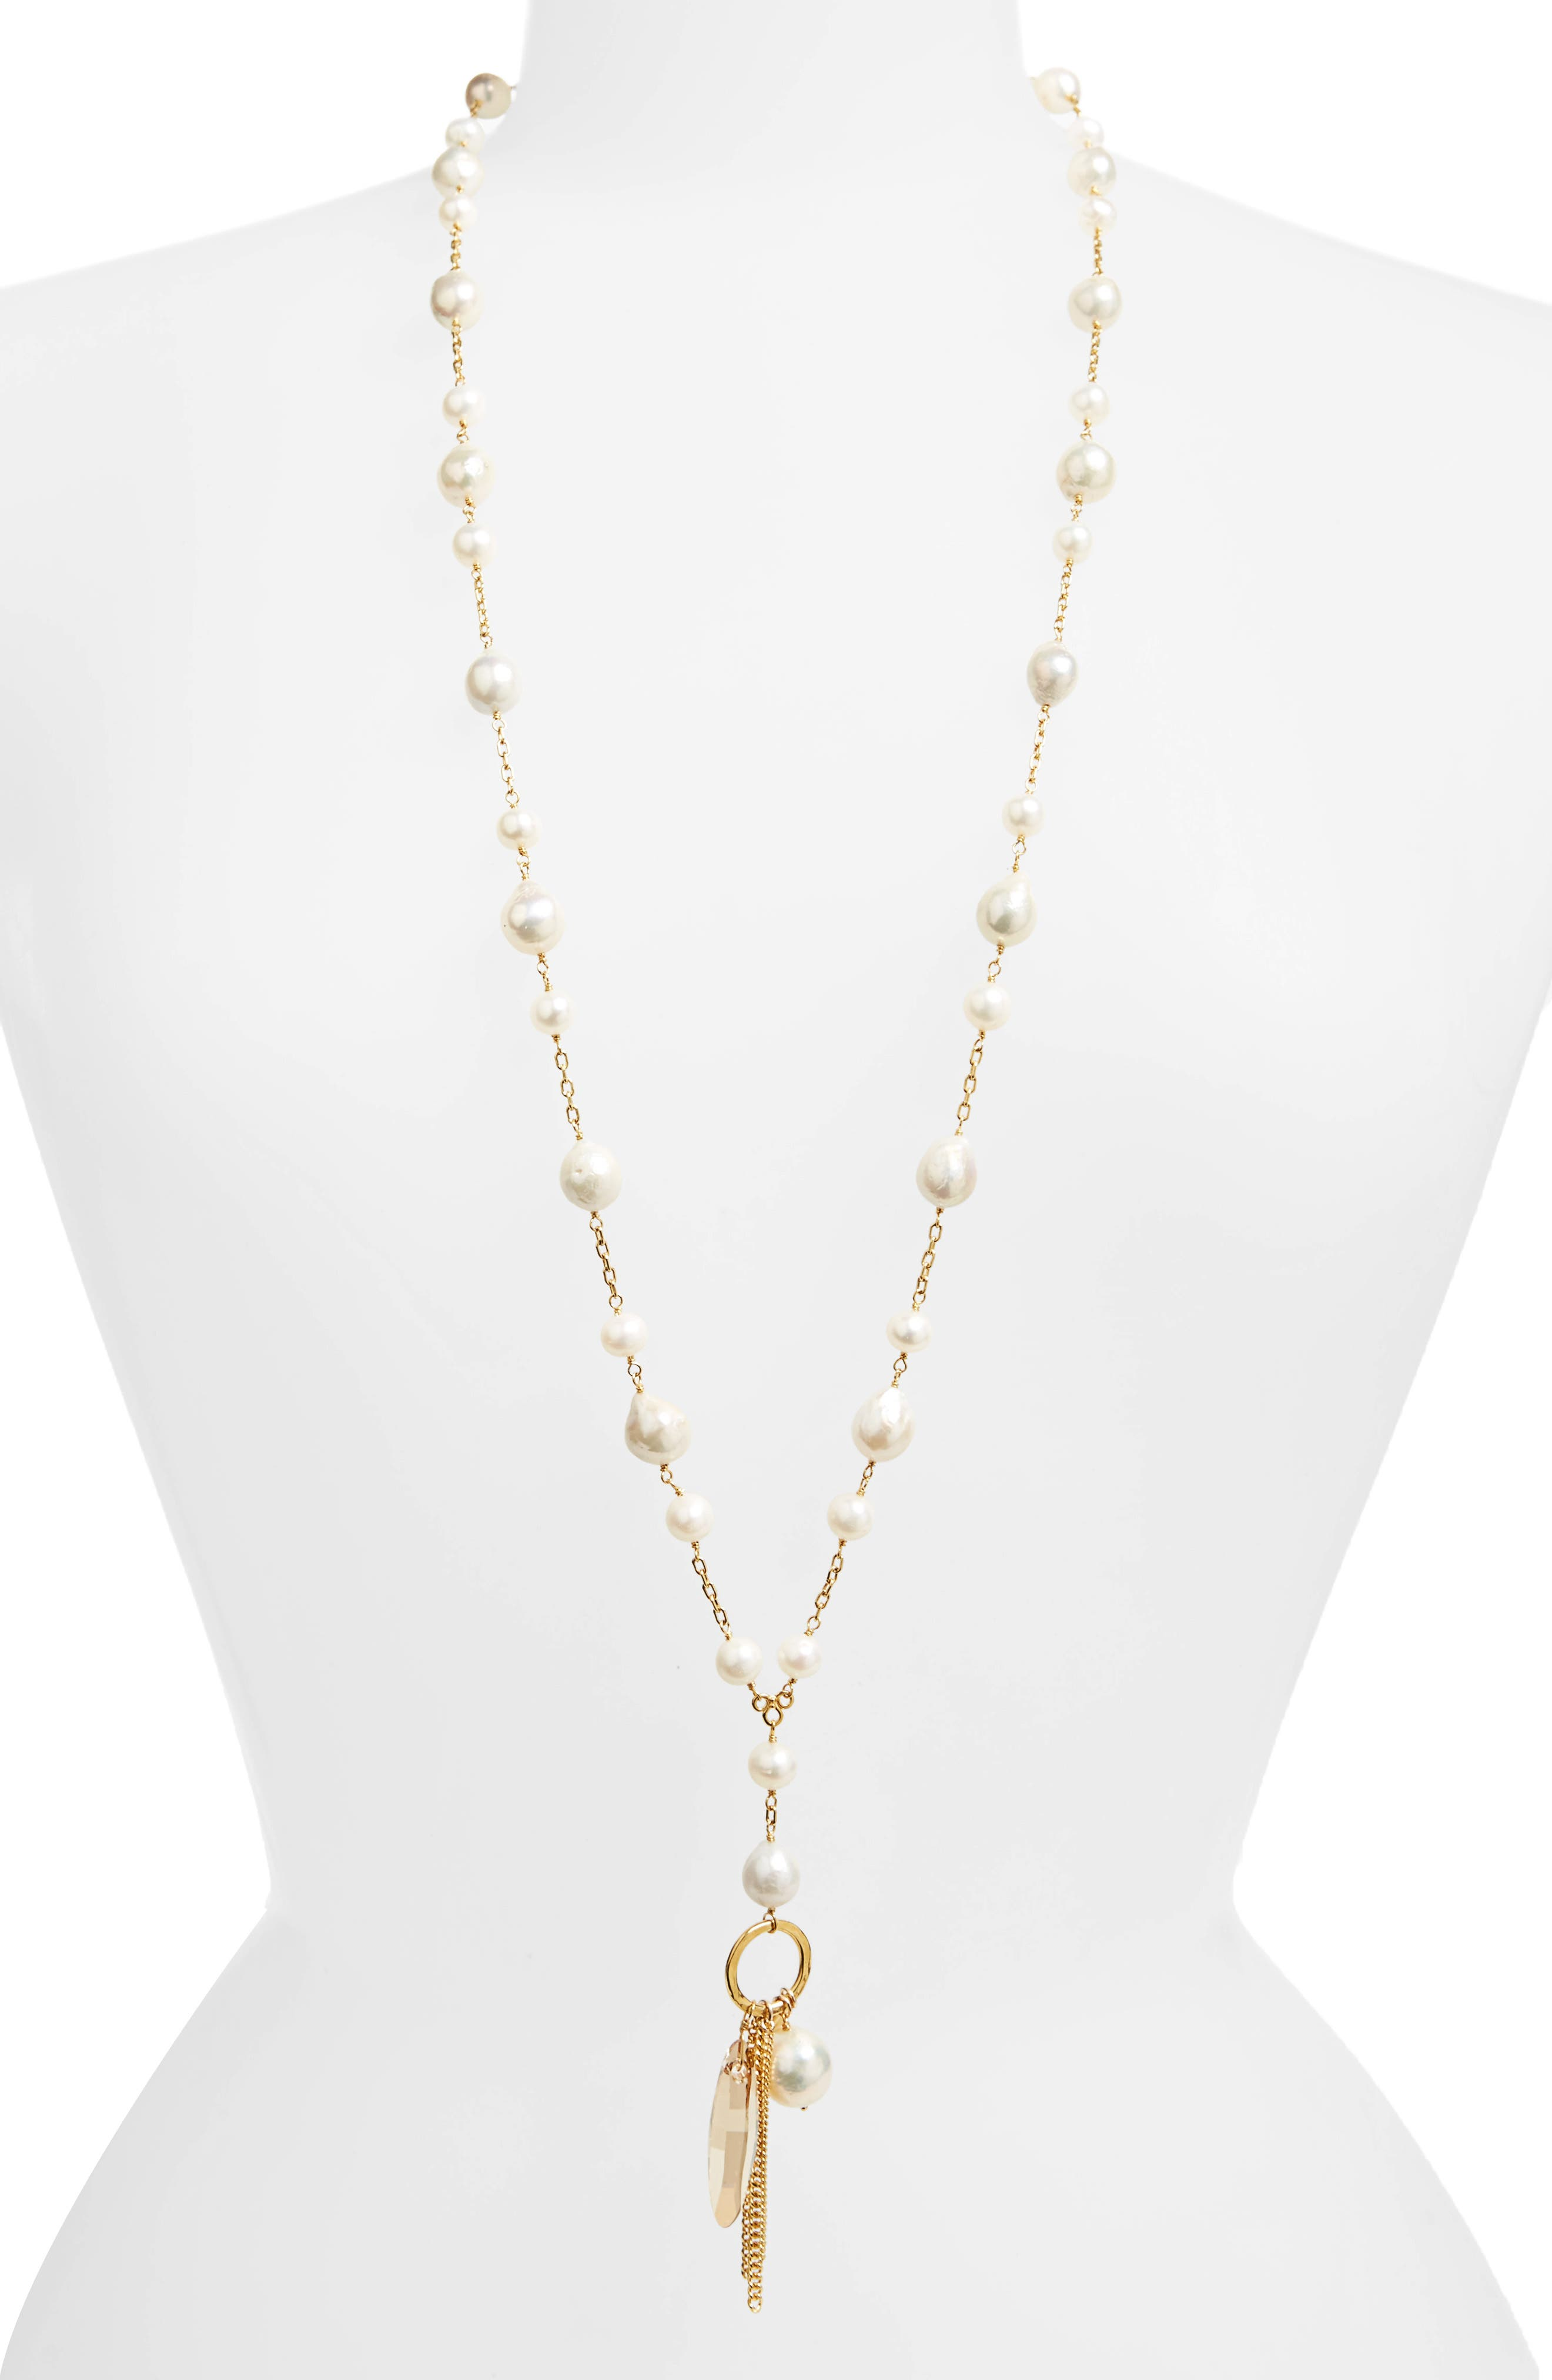 Main Image - Chan Luu Mix Charm Cultured Pearl Necklace